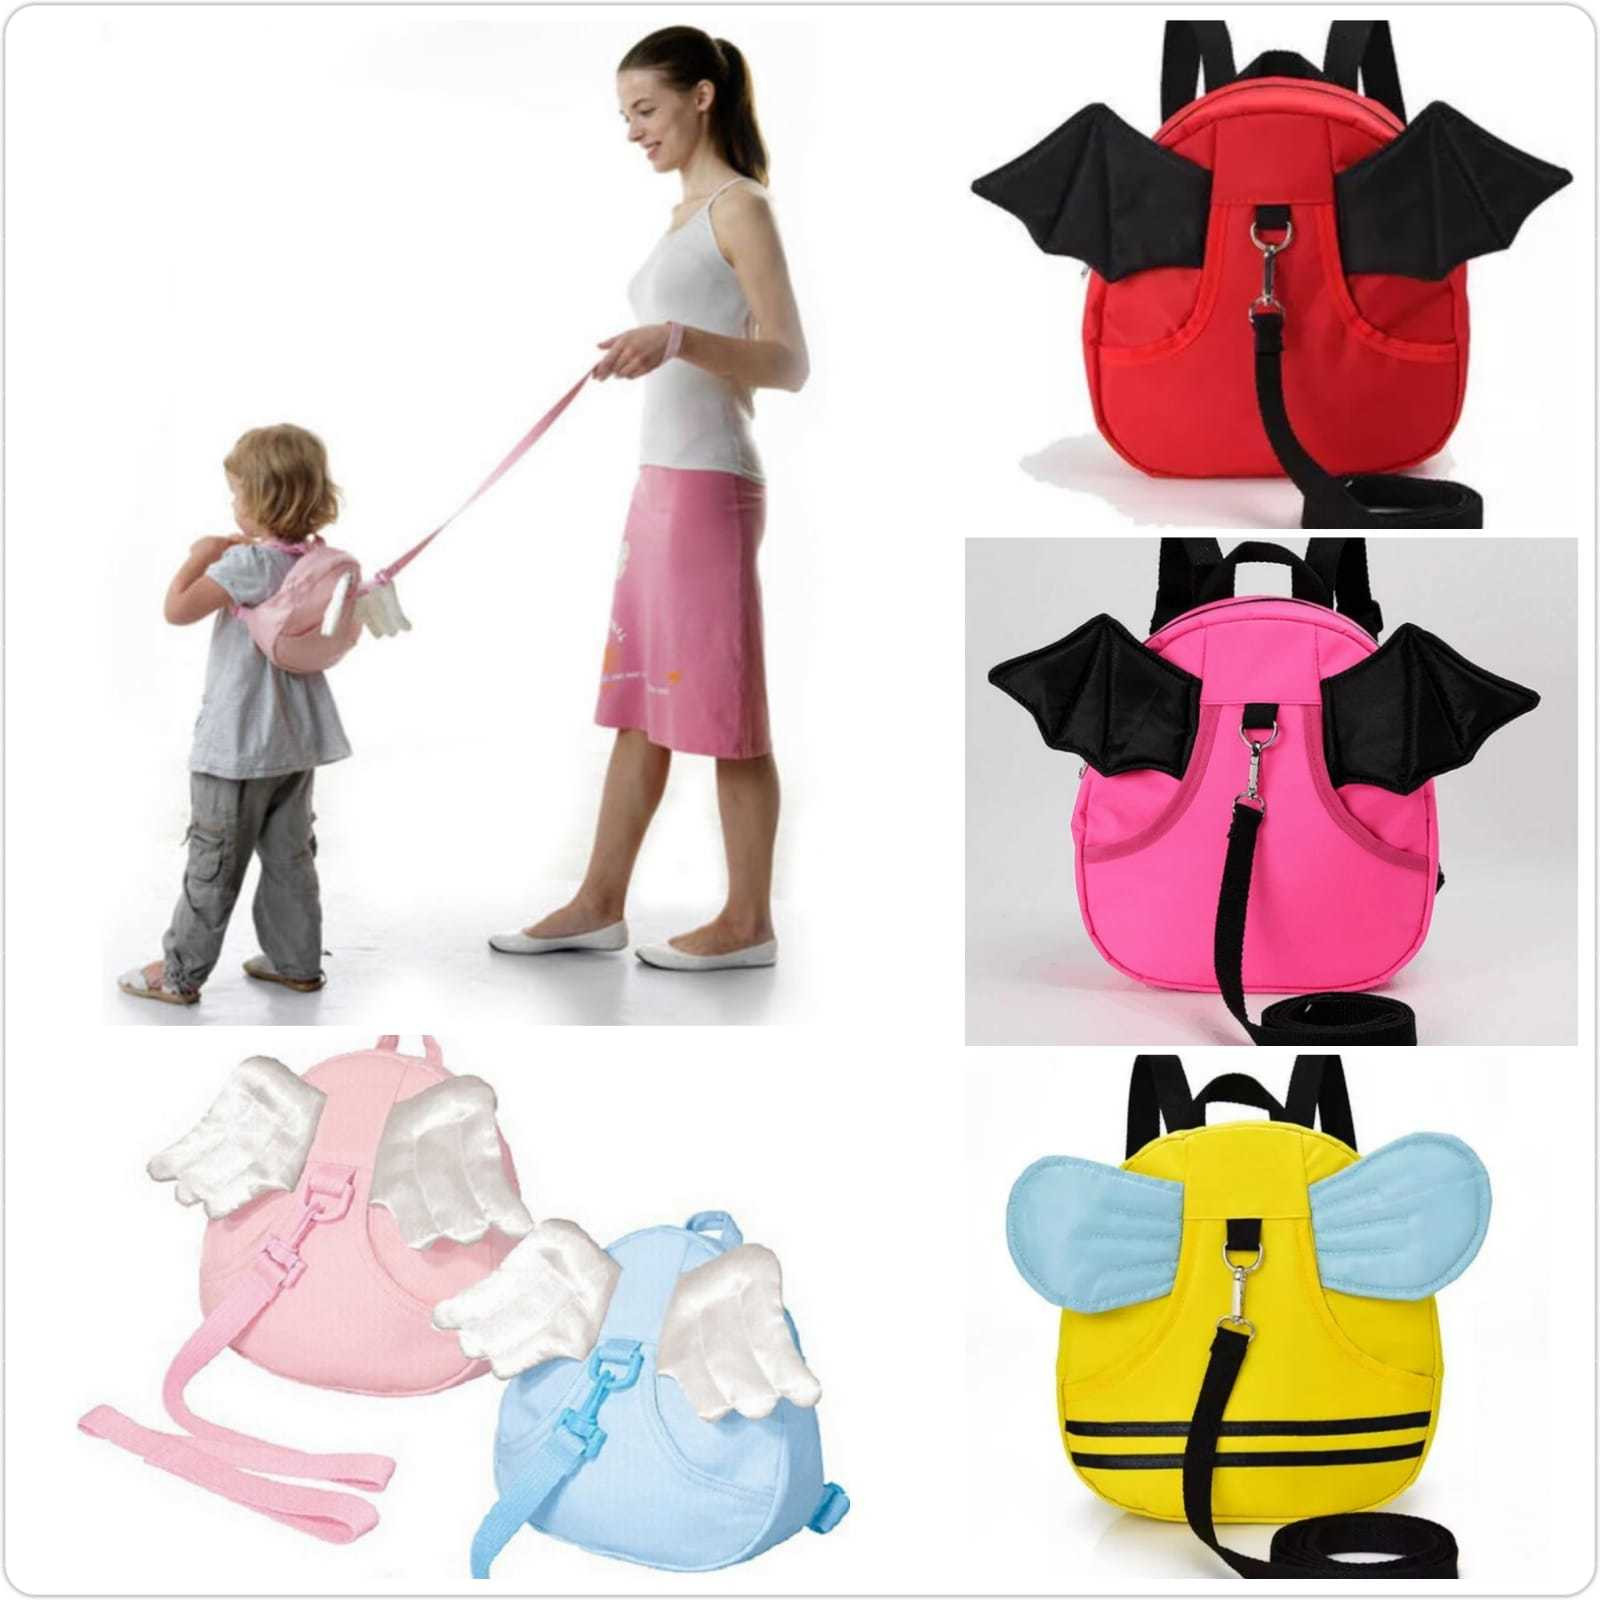 54f16e72ae81 Kid Keeper Safety harness bag backpack / Hyperactive Baby Toddler Child  Children Boy Girl leash